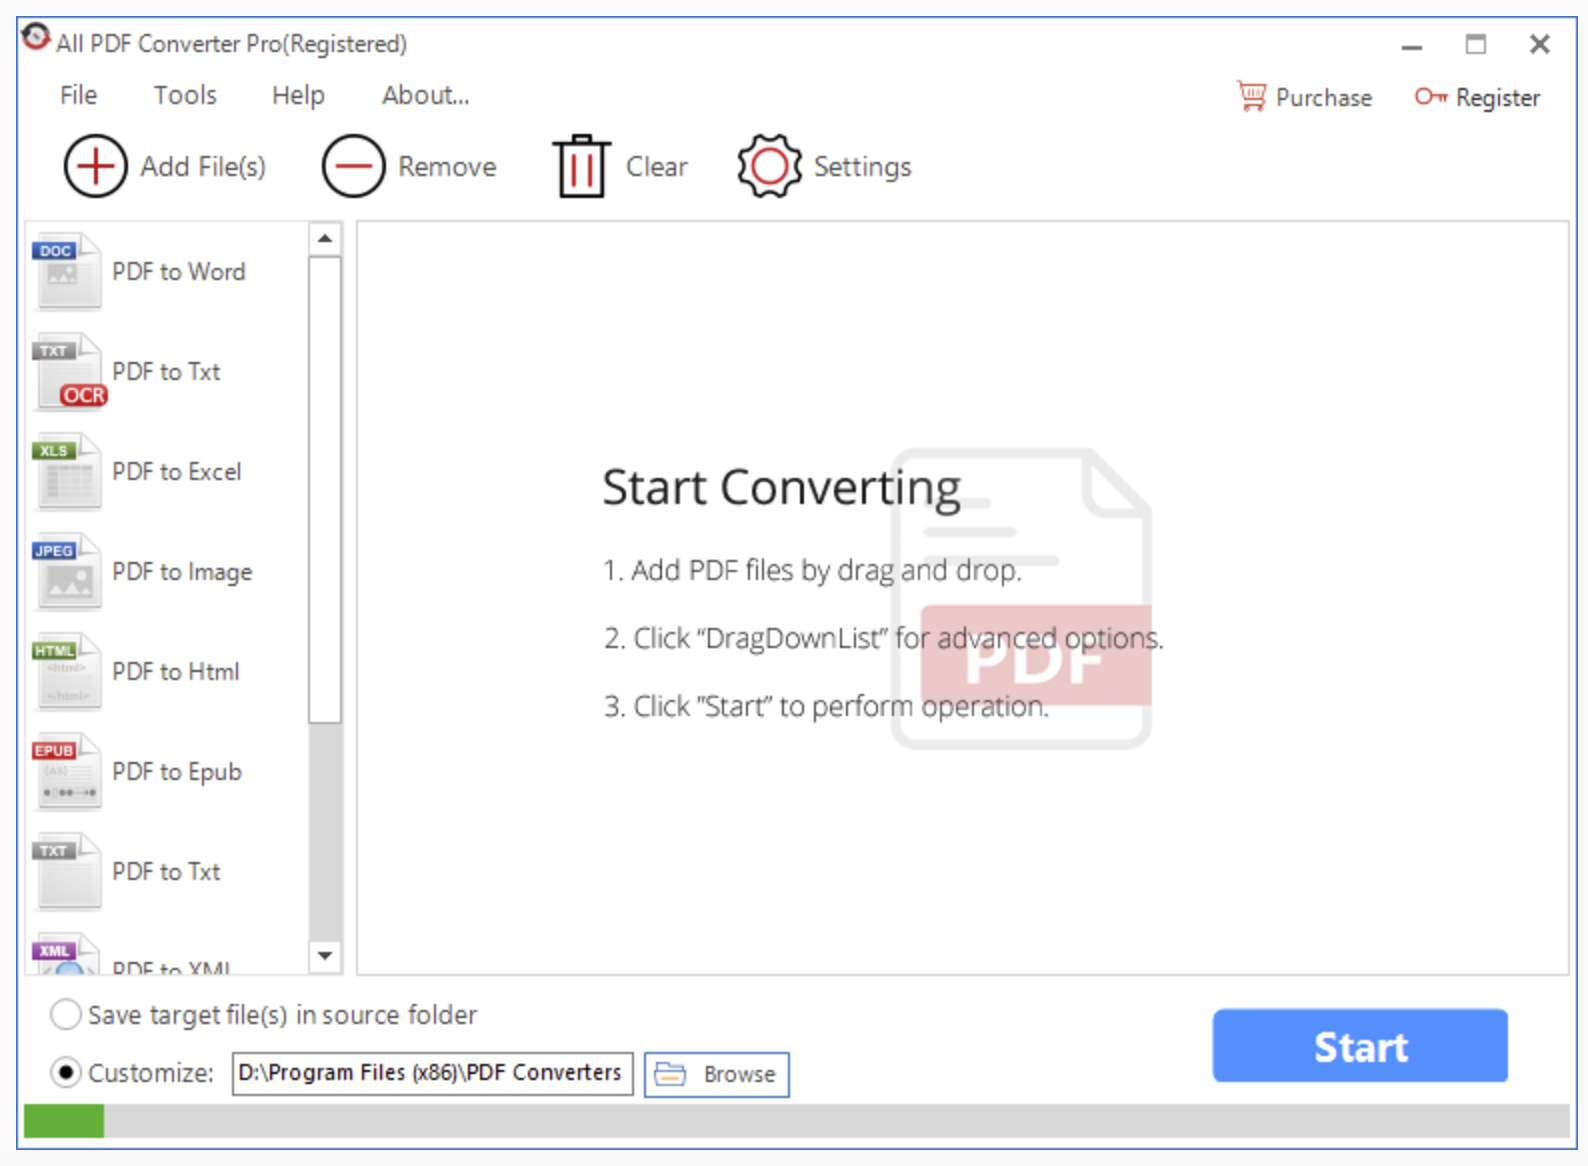 [Free Giveaway] All PDF Converter v3.5.6 for Windows Registration License Code - Convert PDF Documents to Multiple Formats